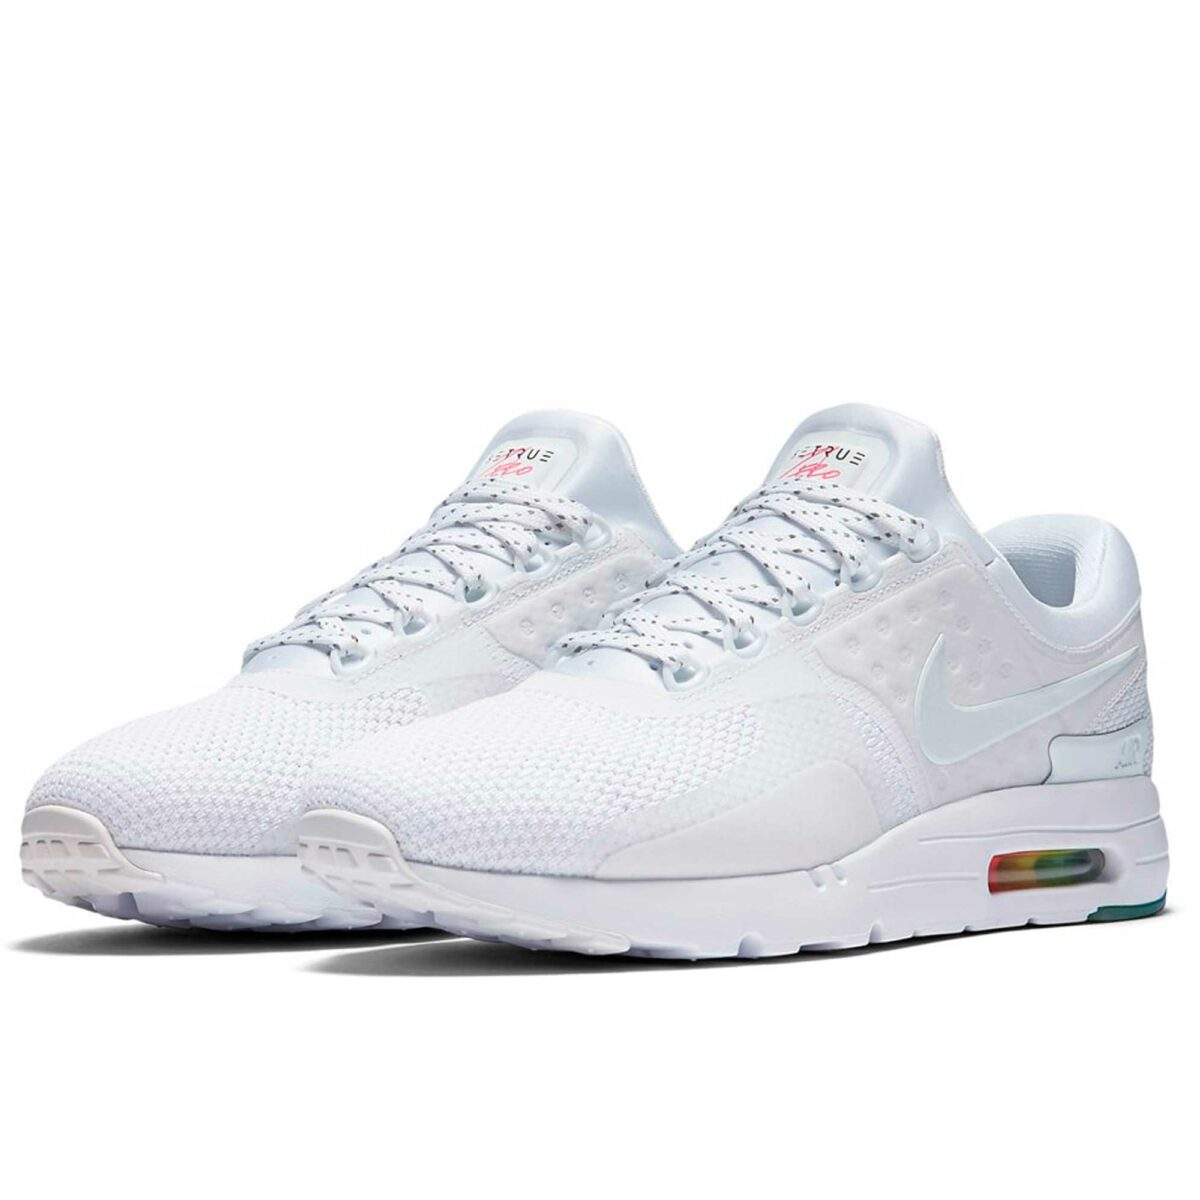 nike air max zero QS white 789695_101 купить